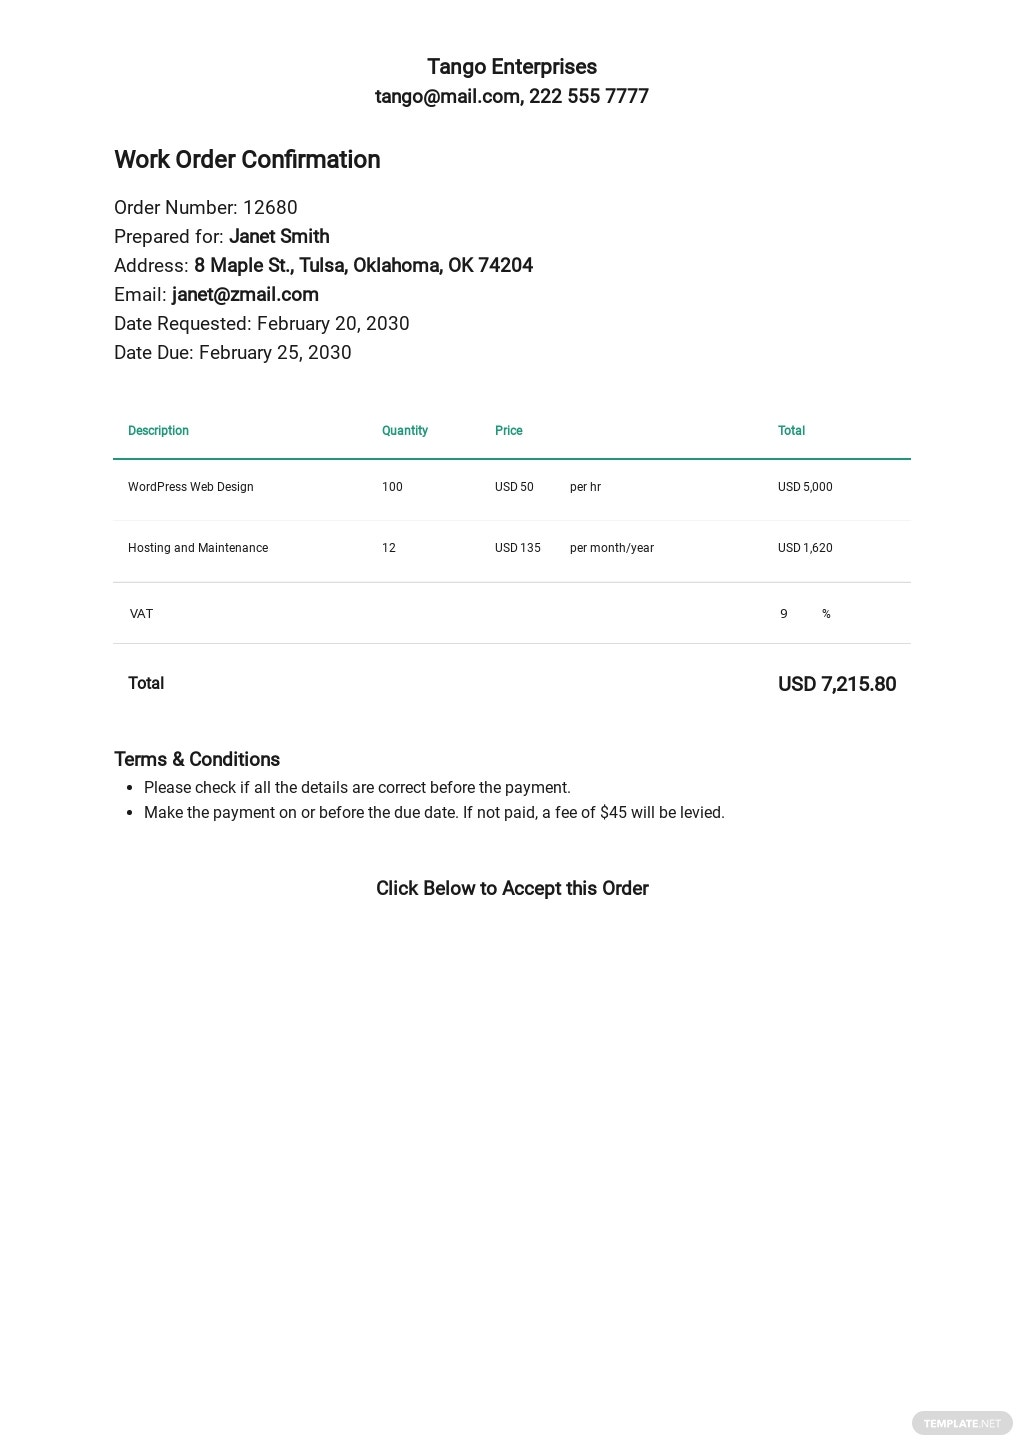 Free Work Order Confirmation Template.jpe